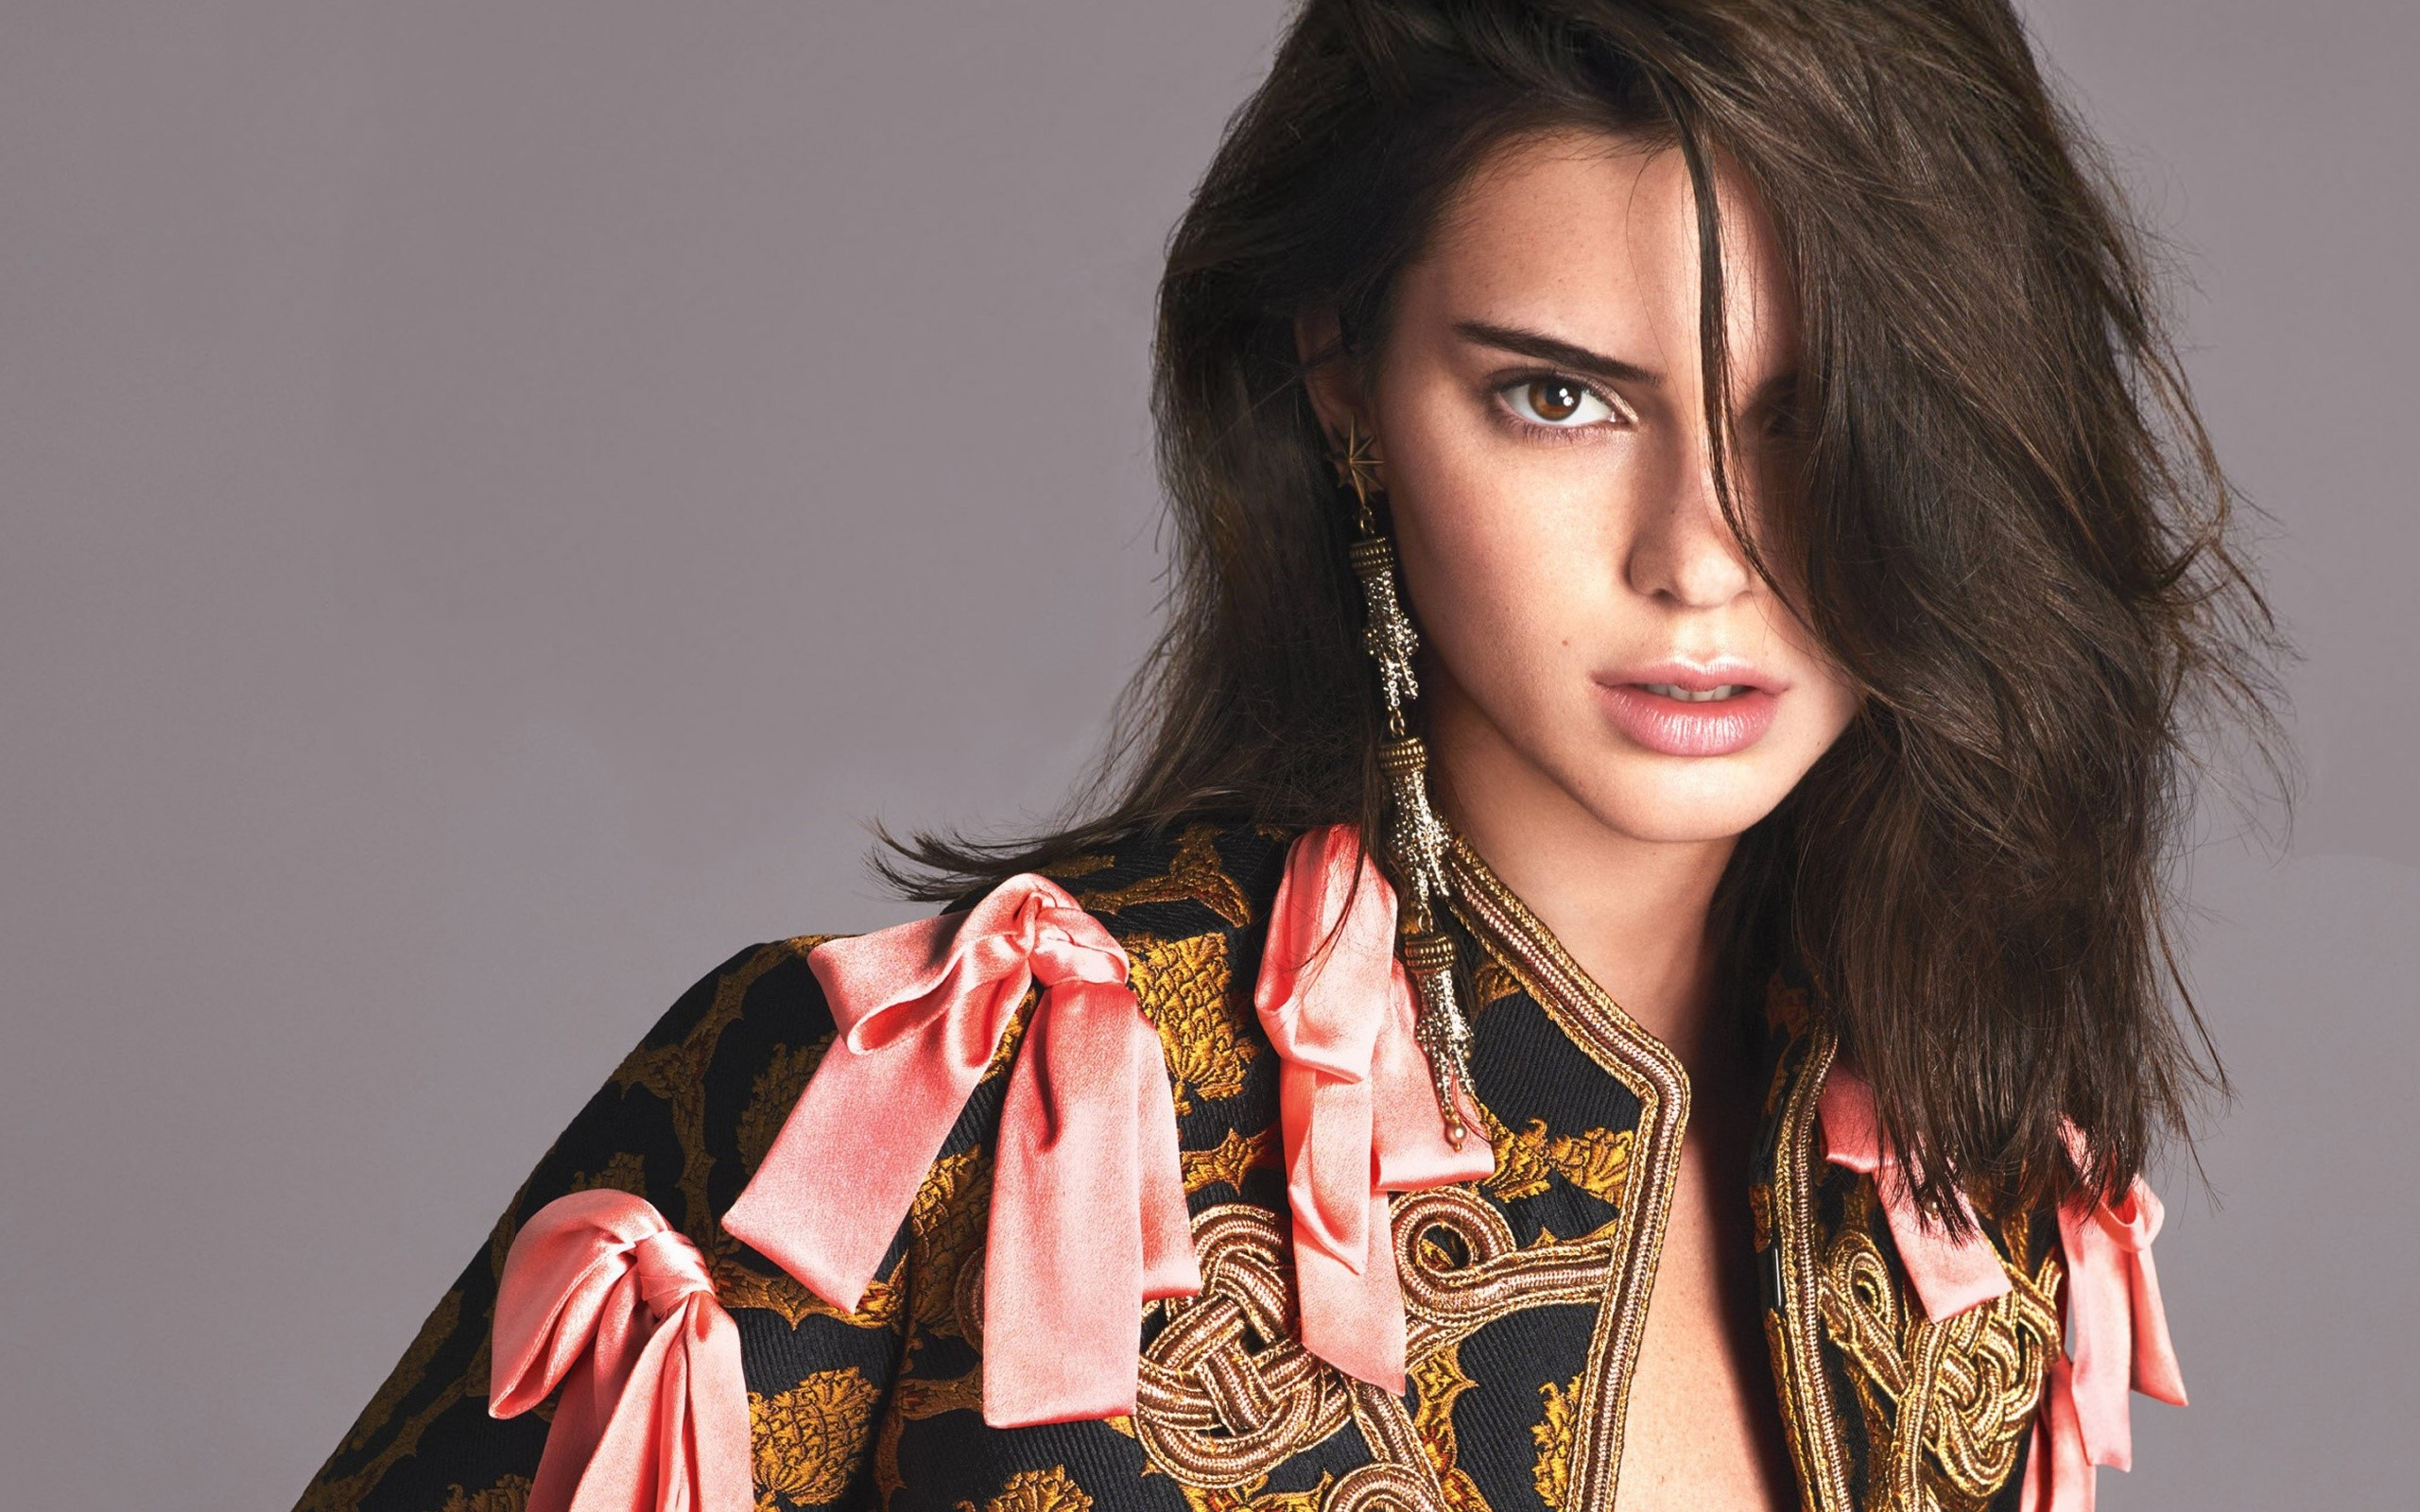 Wallpaper Kendall Jenner en US Vogue Images